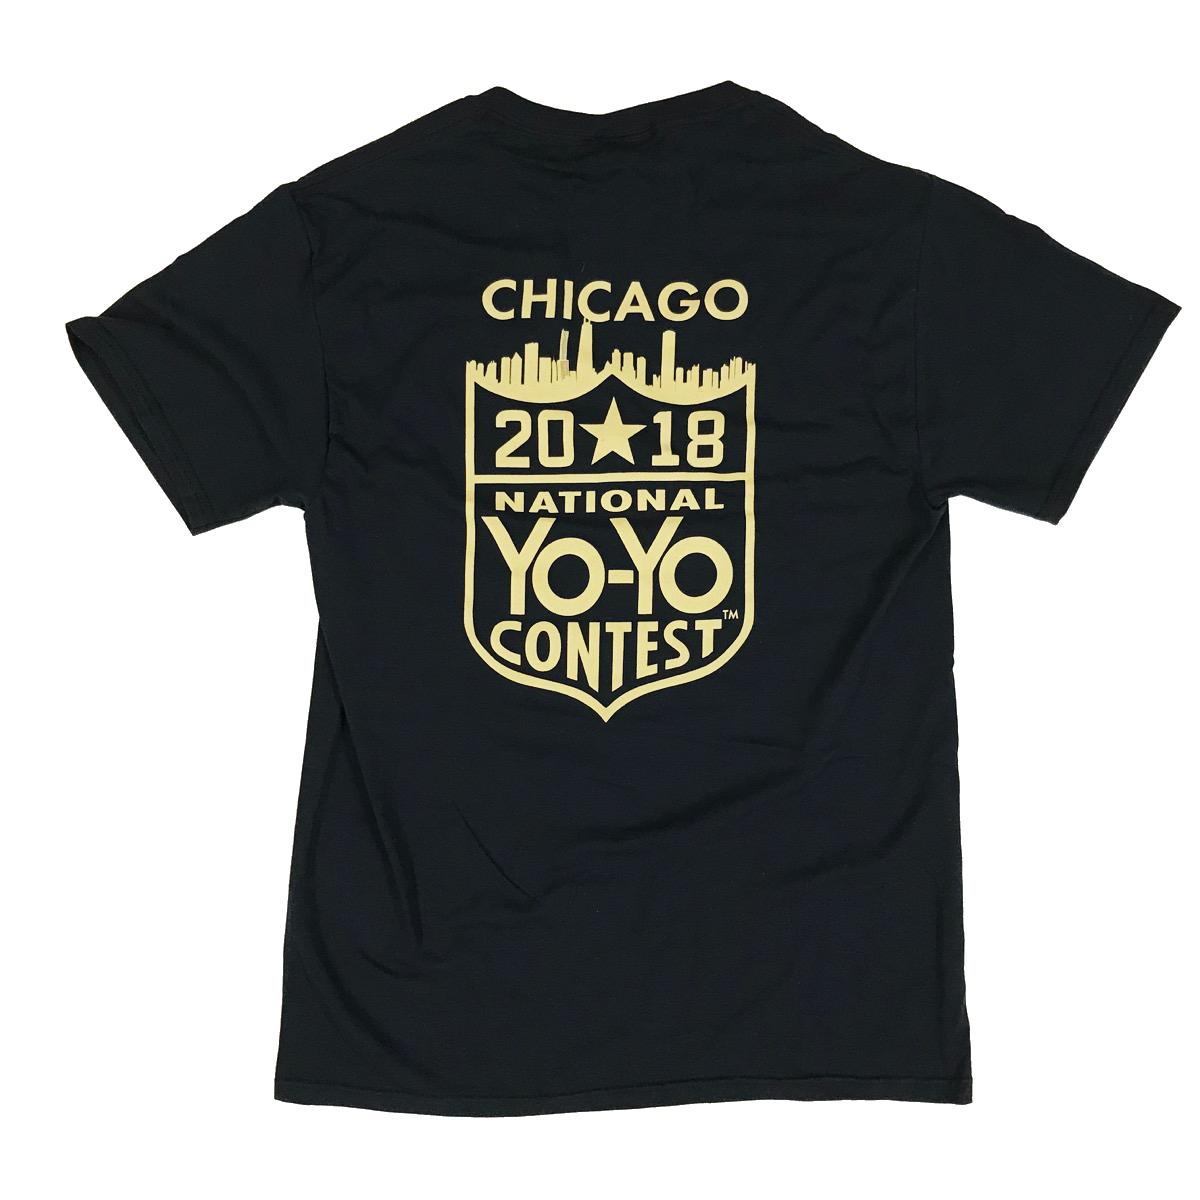 2018 National Yo-Yo Contest T-shirt